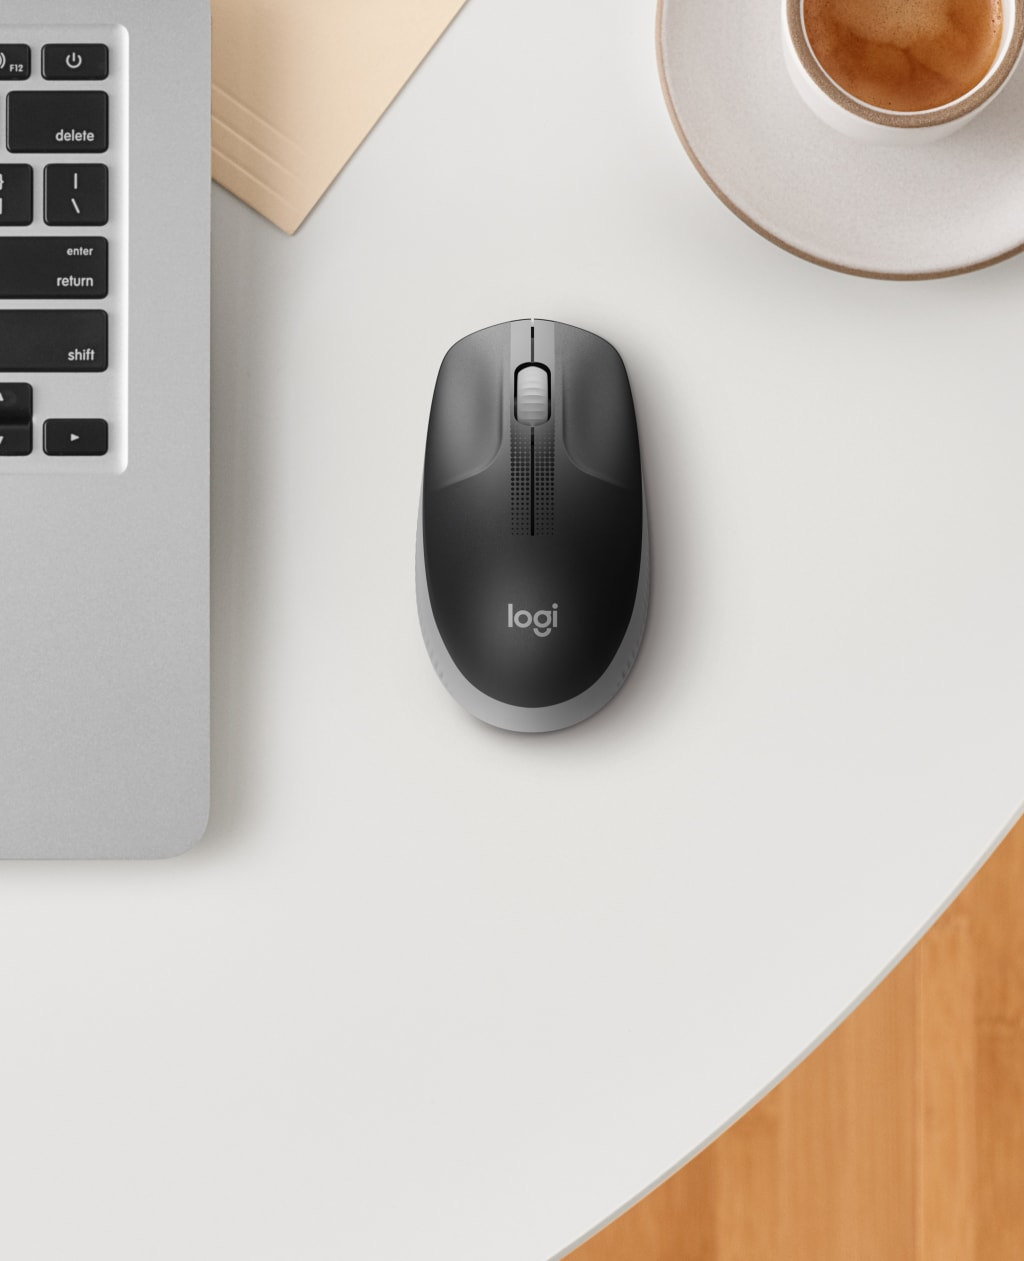 m190-wireless-mouse-feature-03-tablet